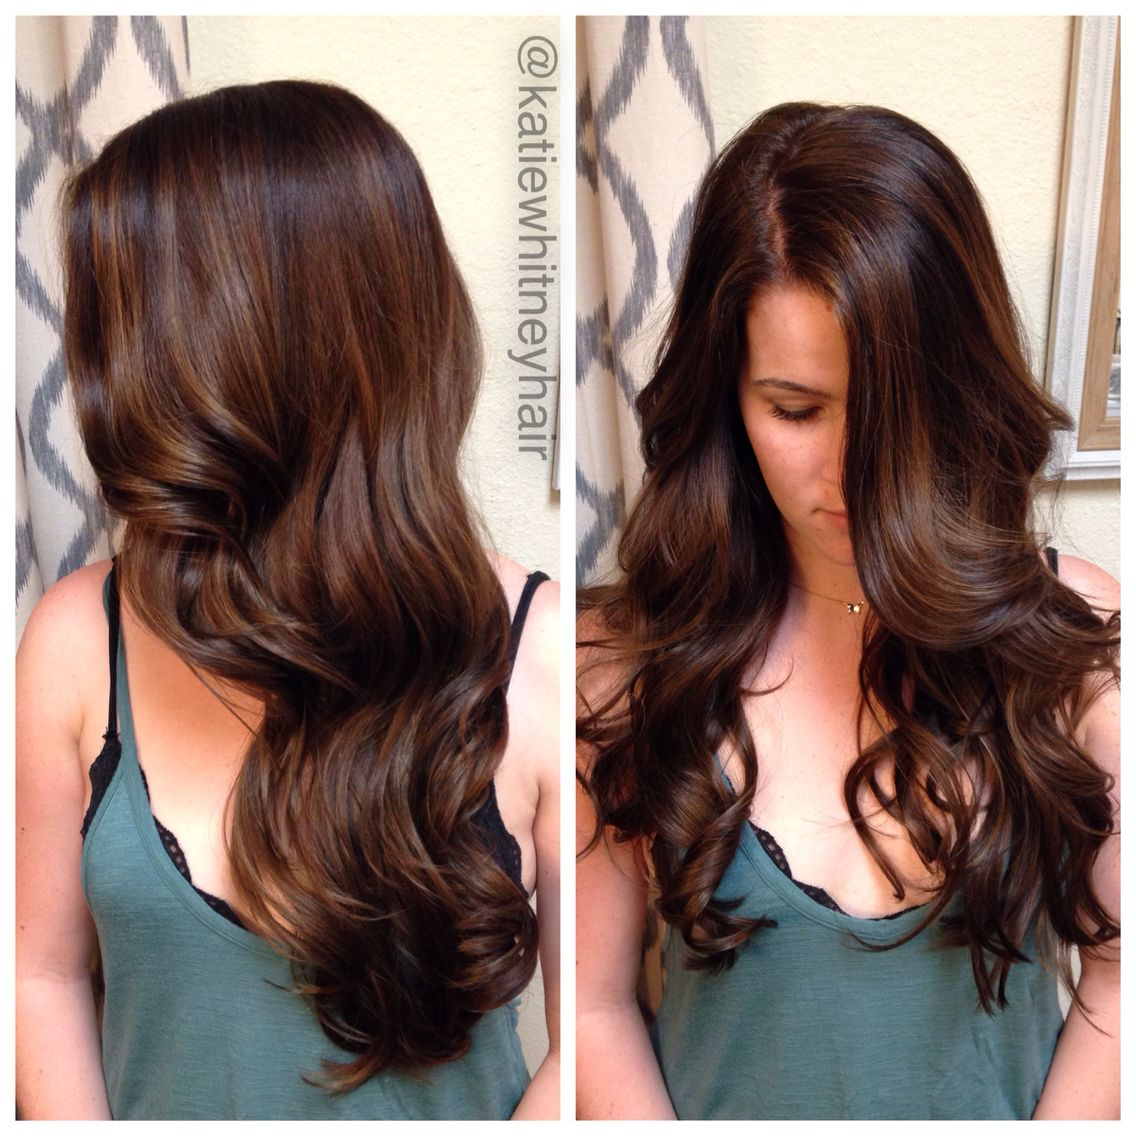 Pin By Tip Salud On Christmas Christmas 2015 Pinterest Hair